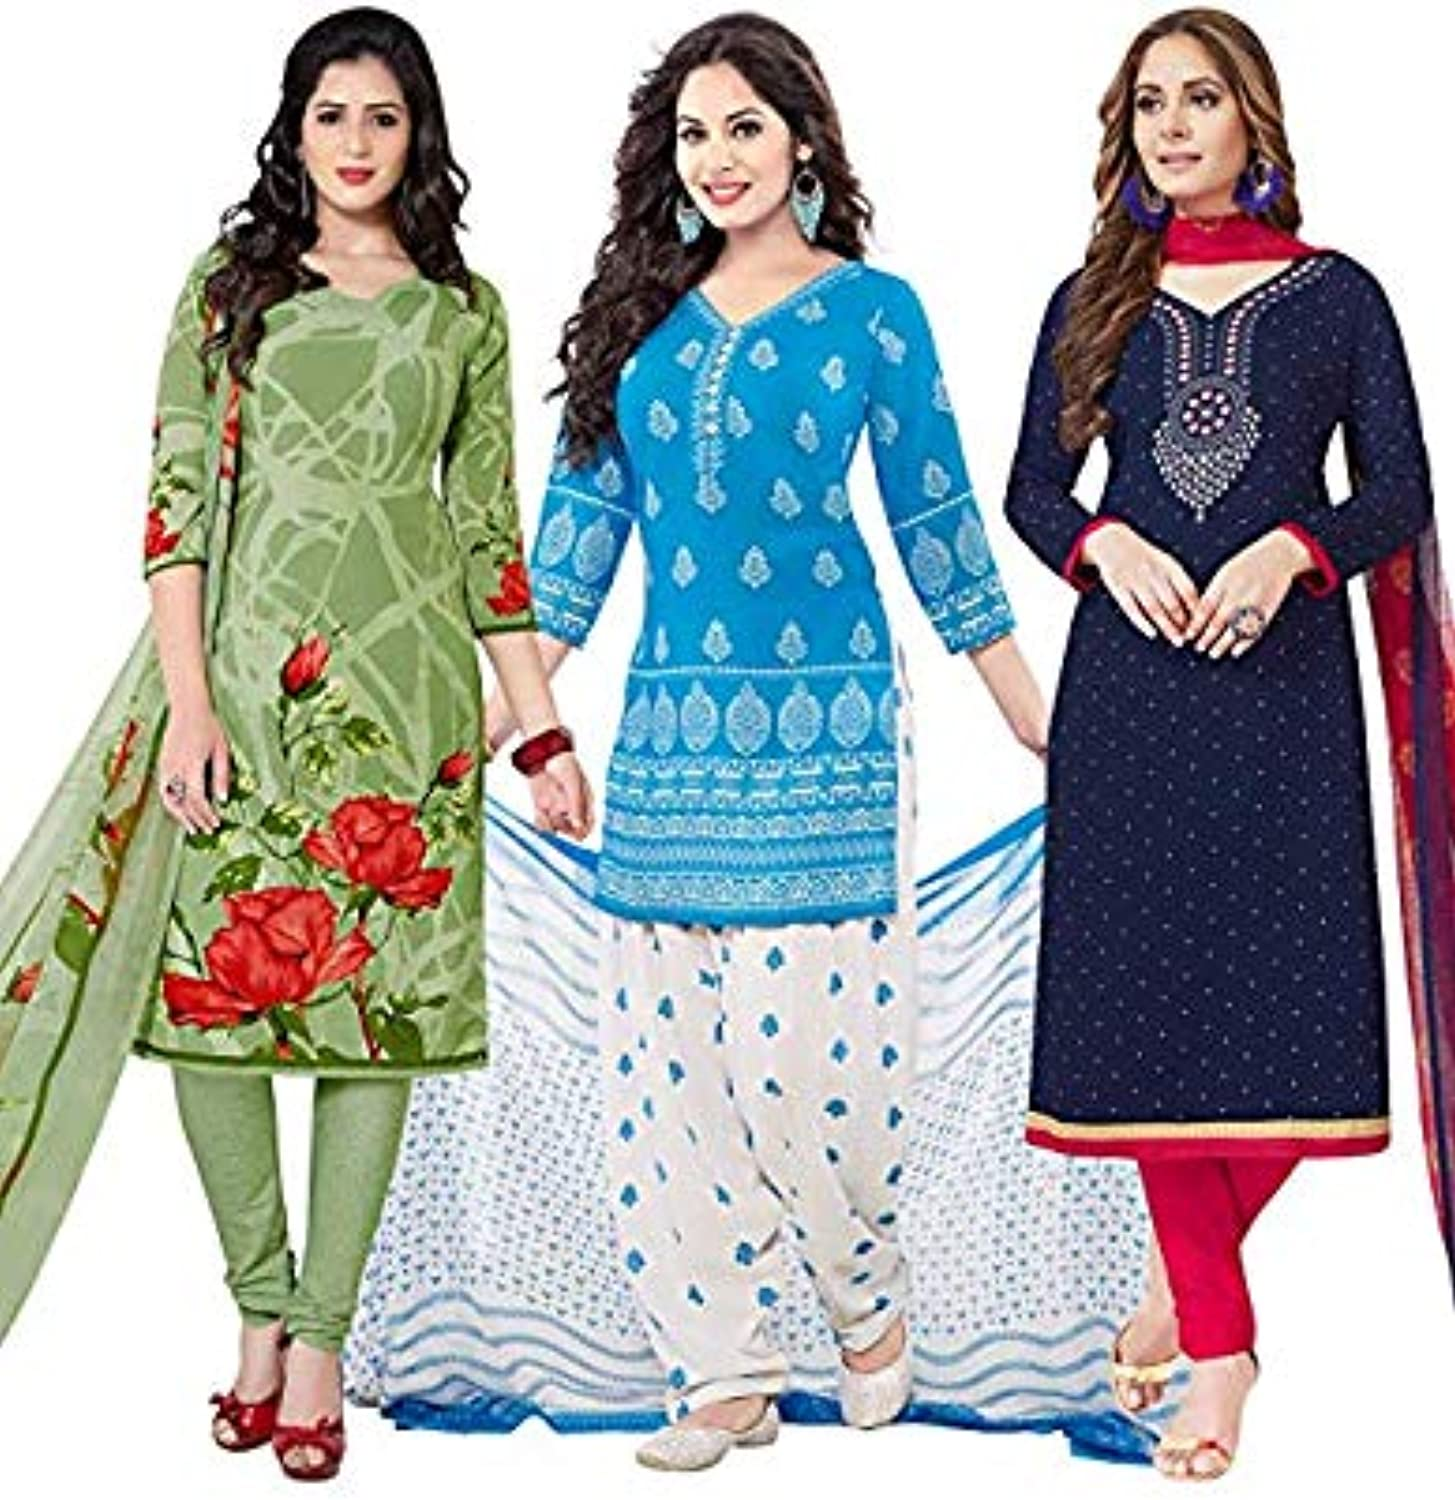 Muhenera Women's Pack of 3 Synthetic Printed Salwar Suit Unstitched Dress Material ComboM1563M1667M2386